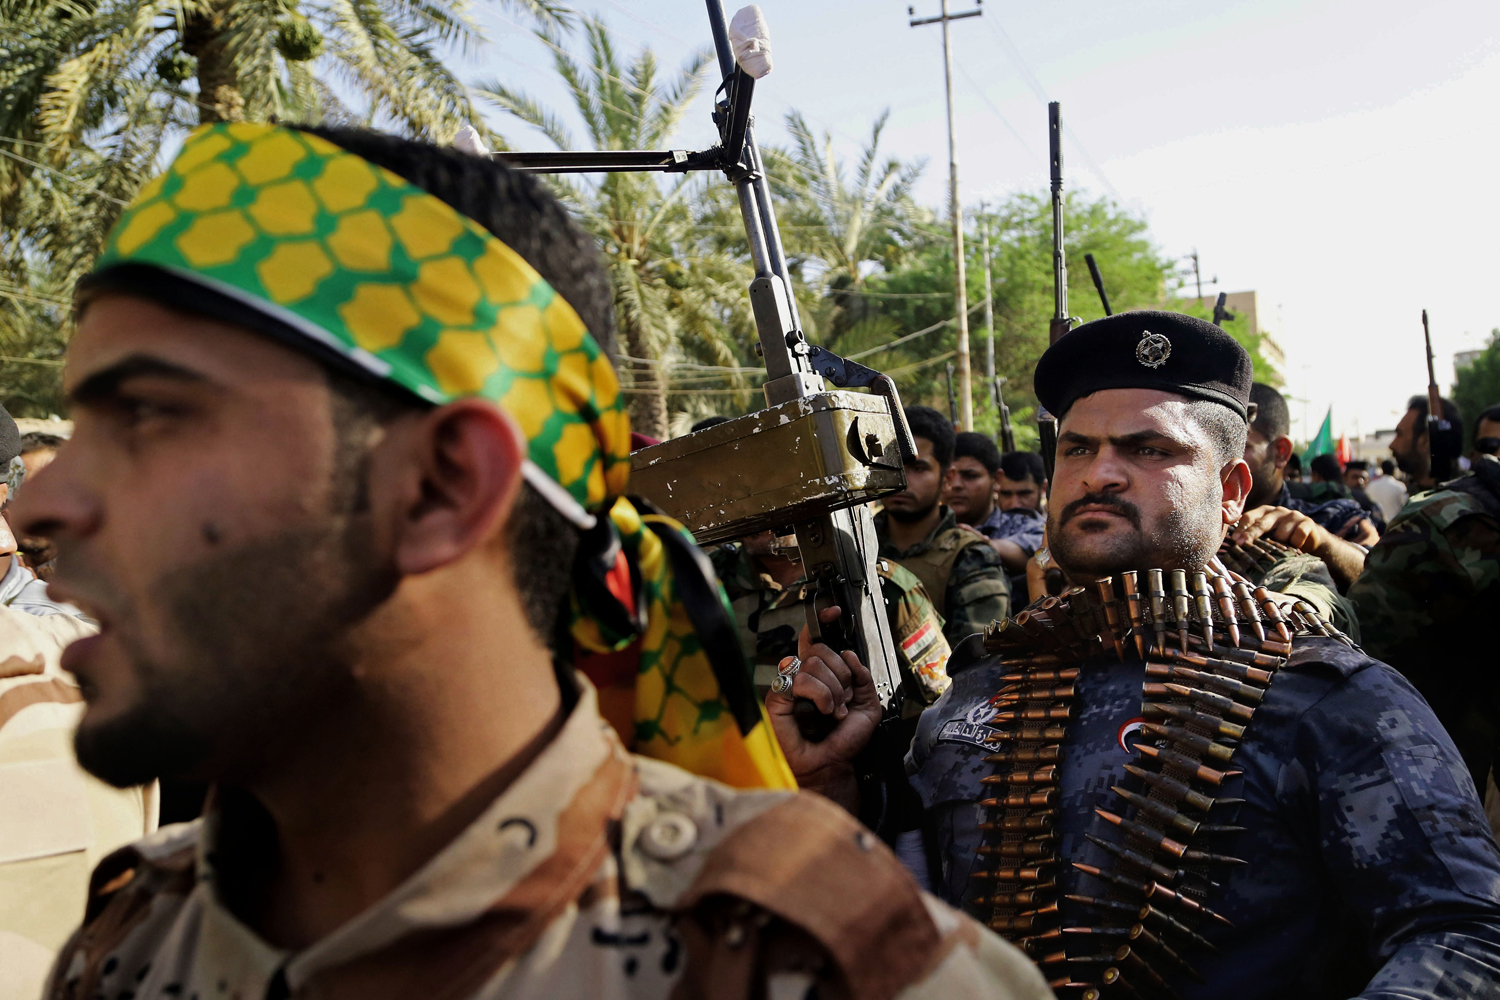 Shiite tribal fighters raise their weapons and chant slogans against the al-Qaida-inspired Islamic State of Iraq and Syria (ISIS) in Basra, June 16.